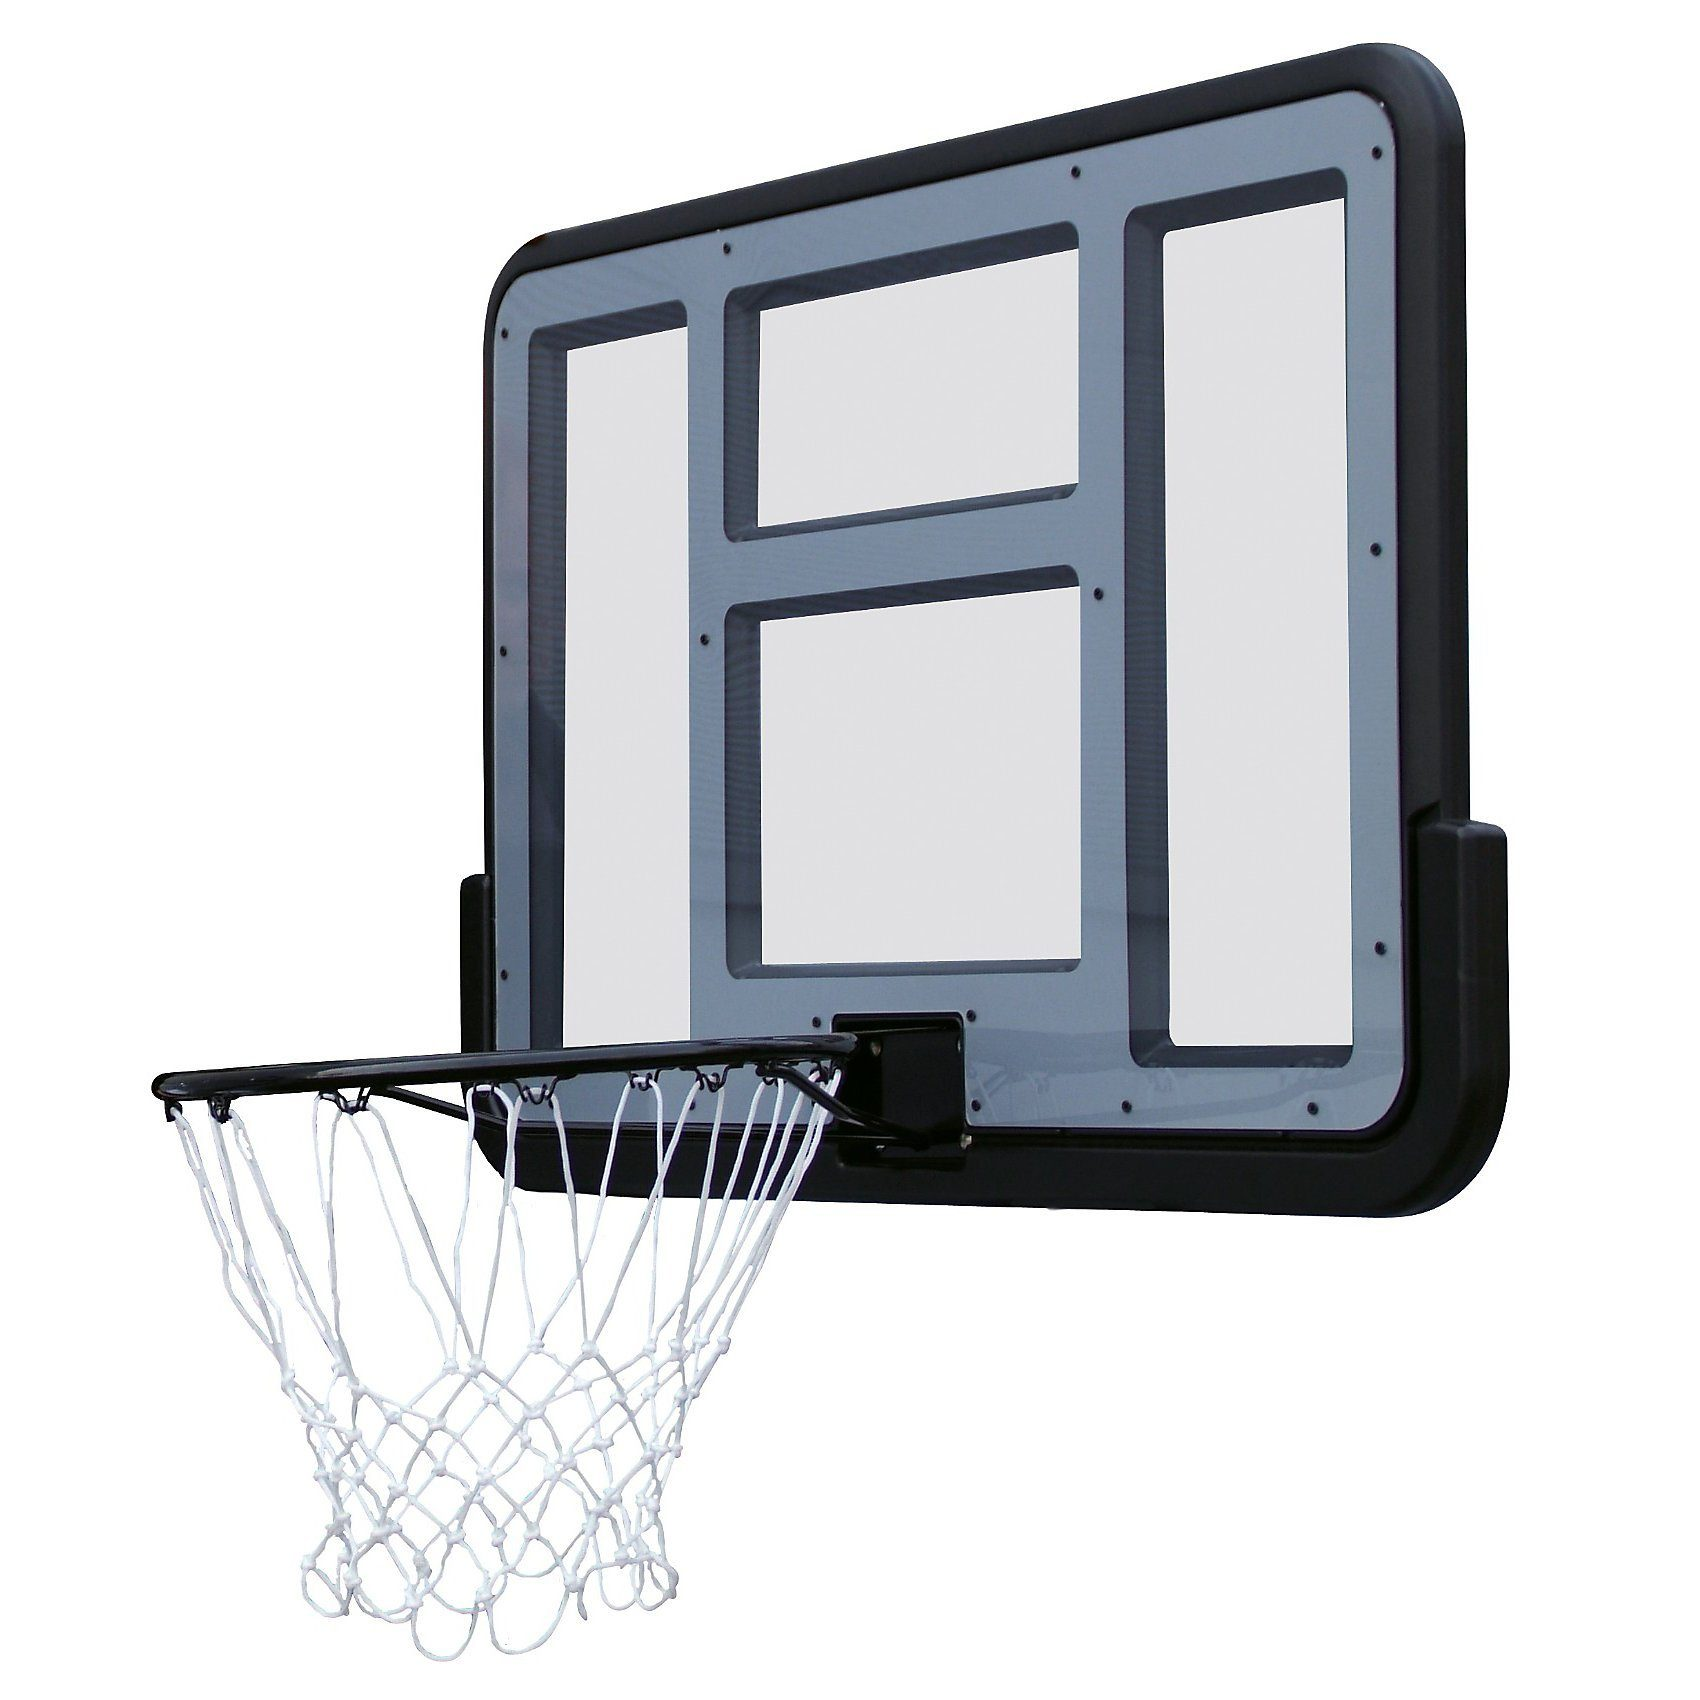 Etan Basketballkorb TopShot Dribble